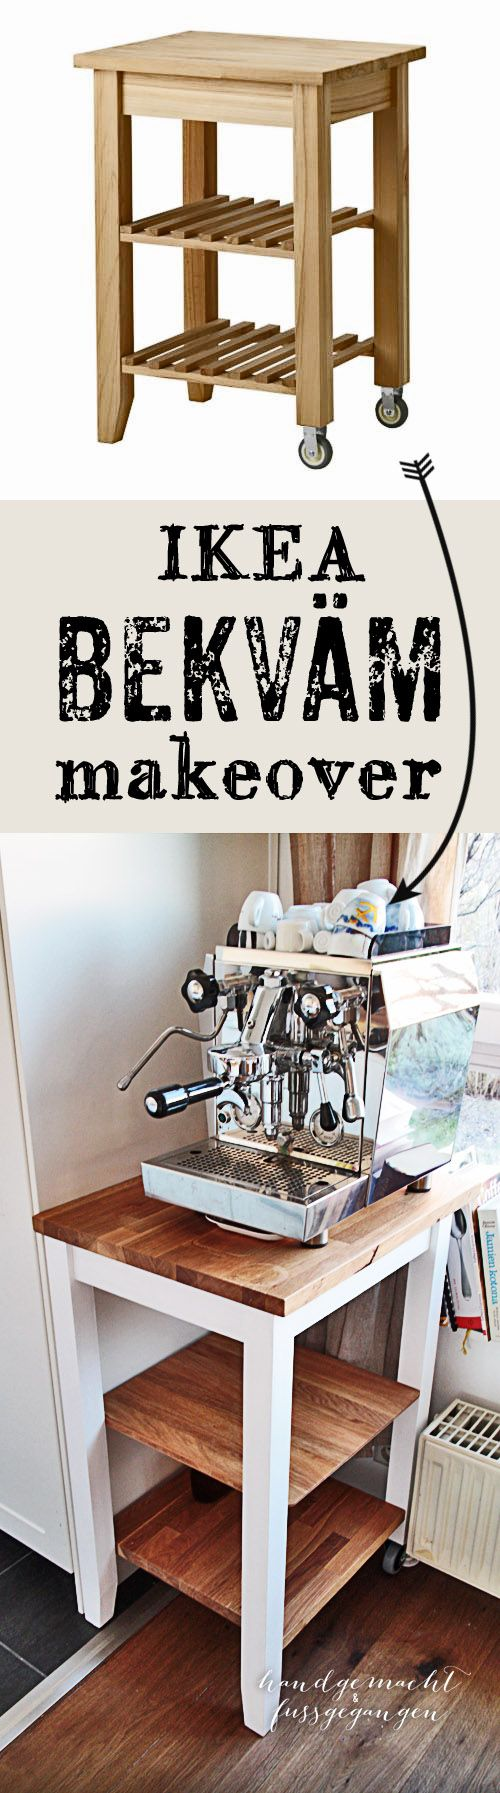 Diy Ikea Kücheninsel Diy Ikea Bekvam Bekväm Kitchen Cart Makeover Hack Wie Man Die